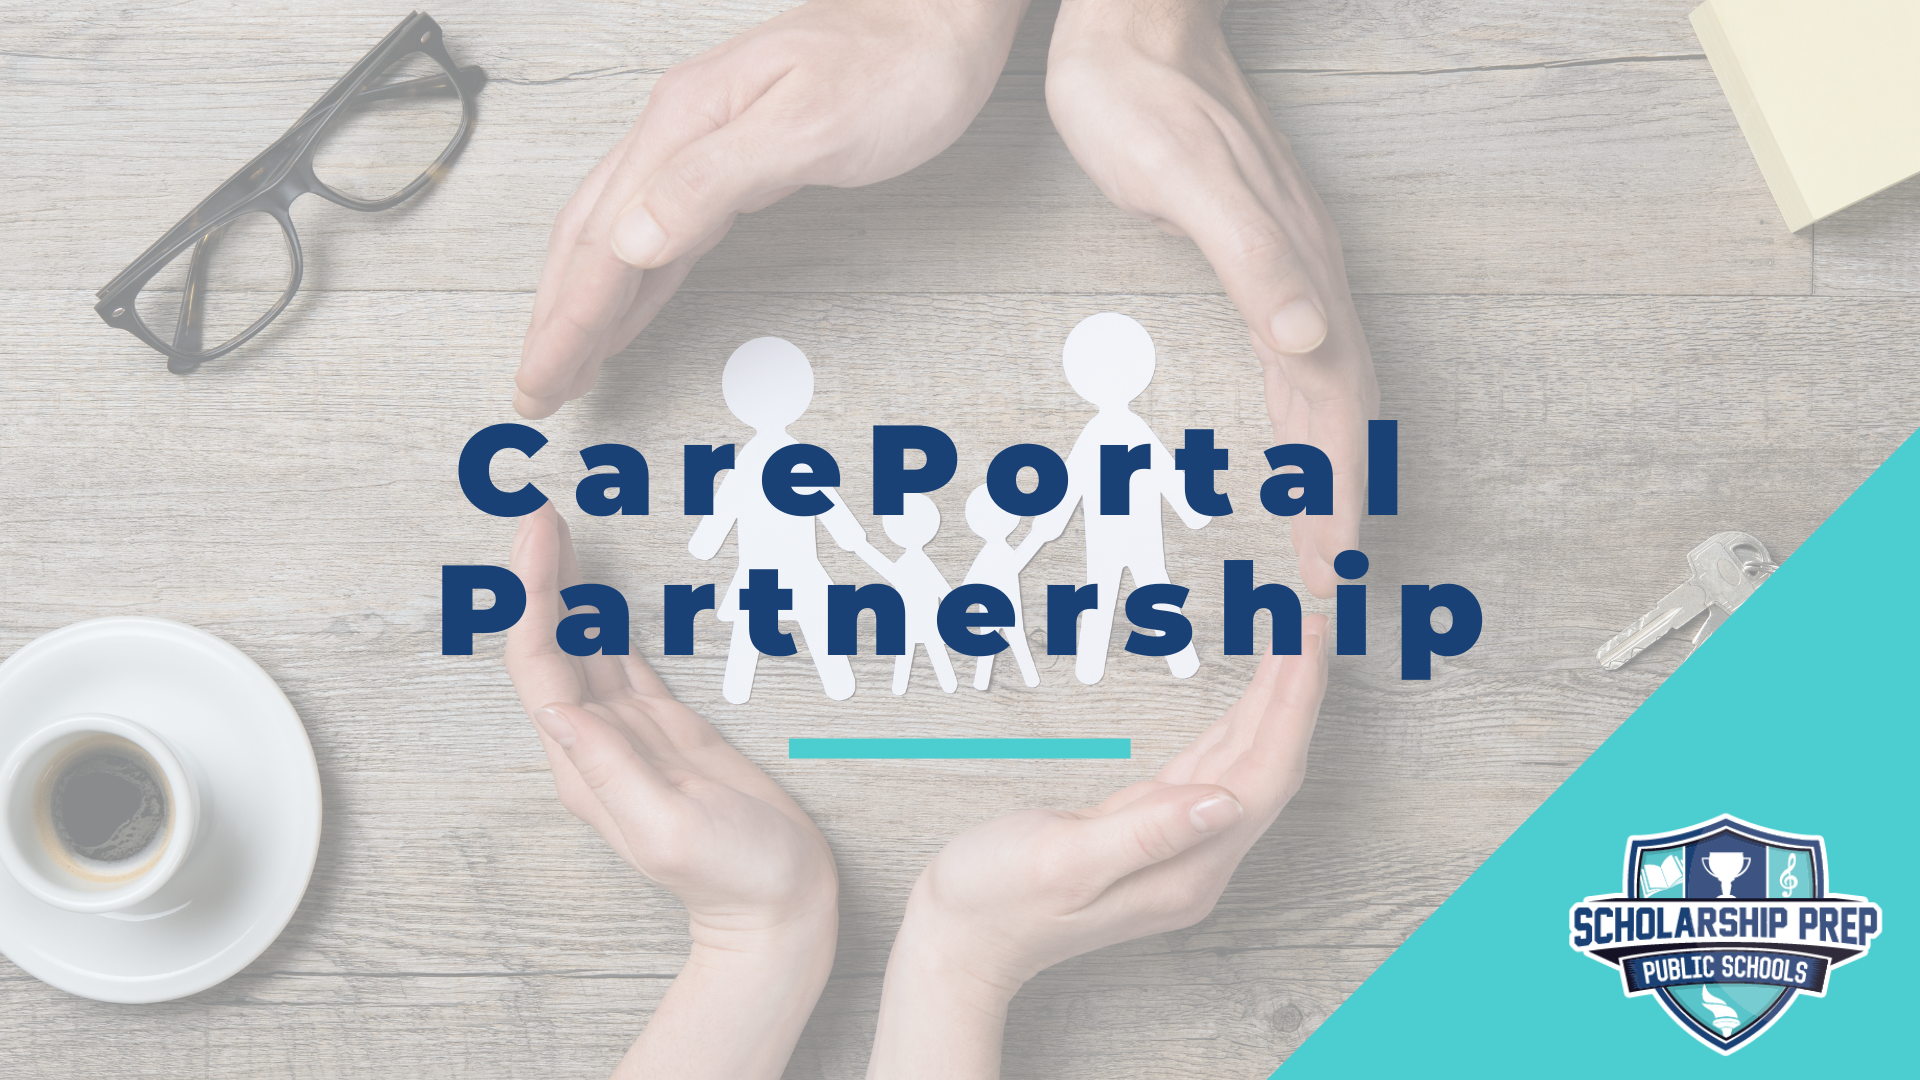 Scholarship Prep South Bay Joining CarePortal